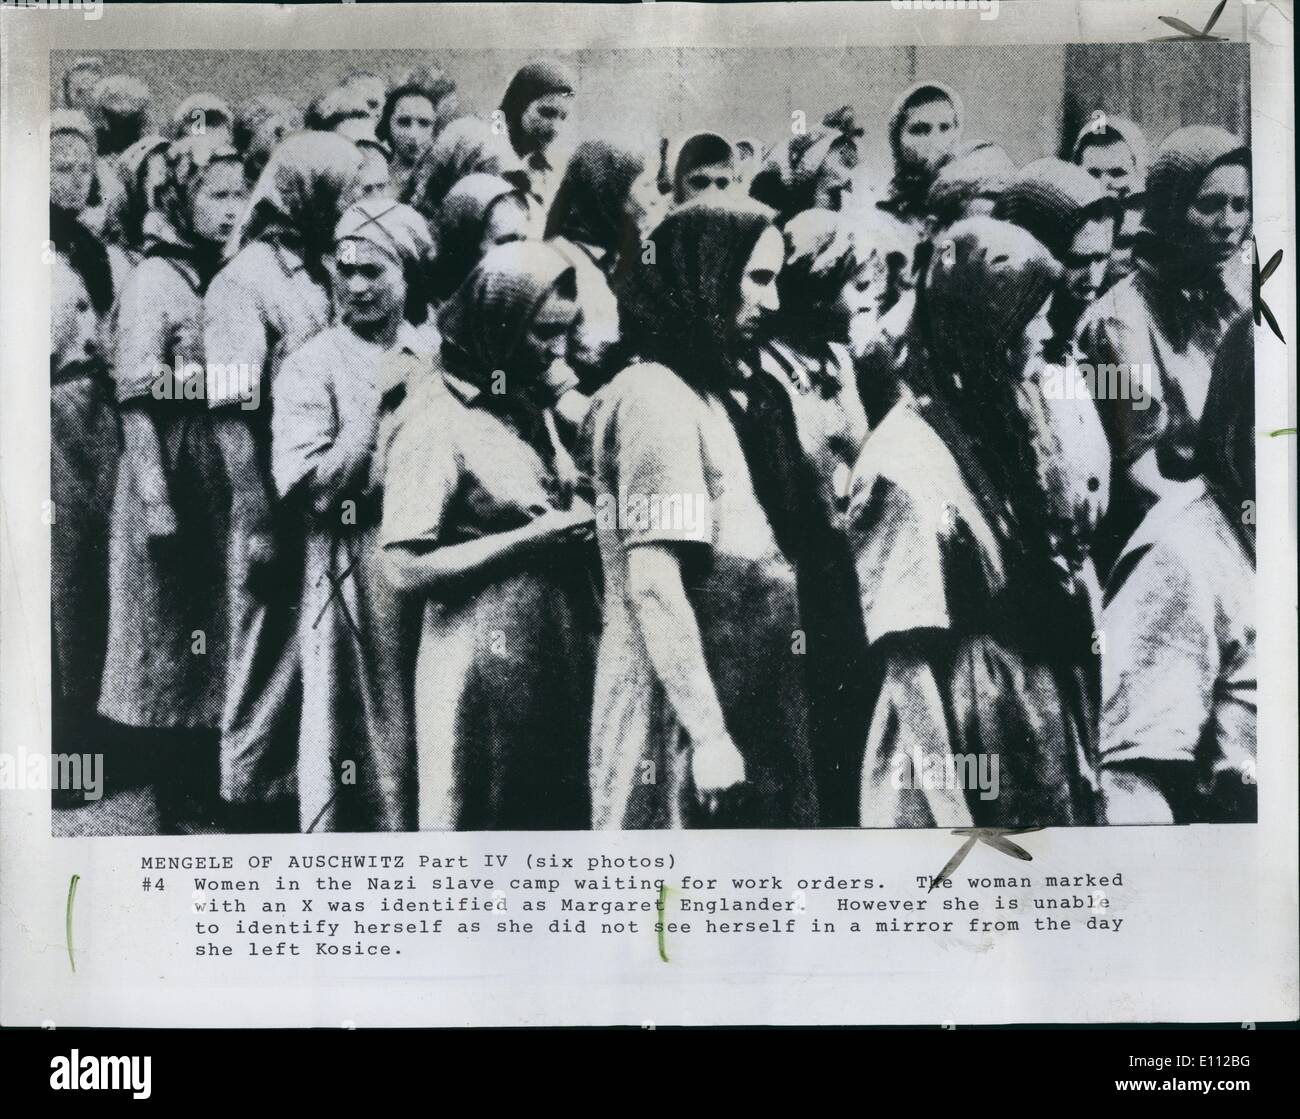 May 05, 1975 - Women in Auschwitz - Birkenau wait for work orders. The woman marked with an X was identified as Margaret F.Englander. However, she is unable to identify herself as she did not see herself in a mirror until near the end of her stay at the concentration camp. - Stock Image